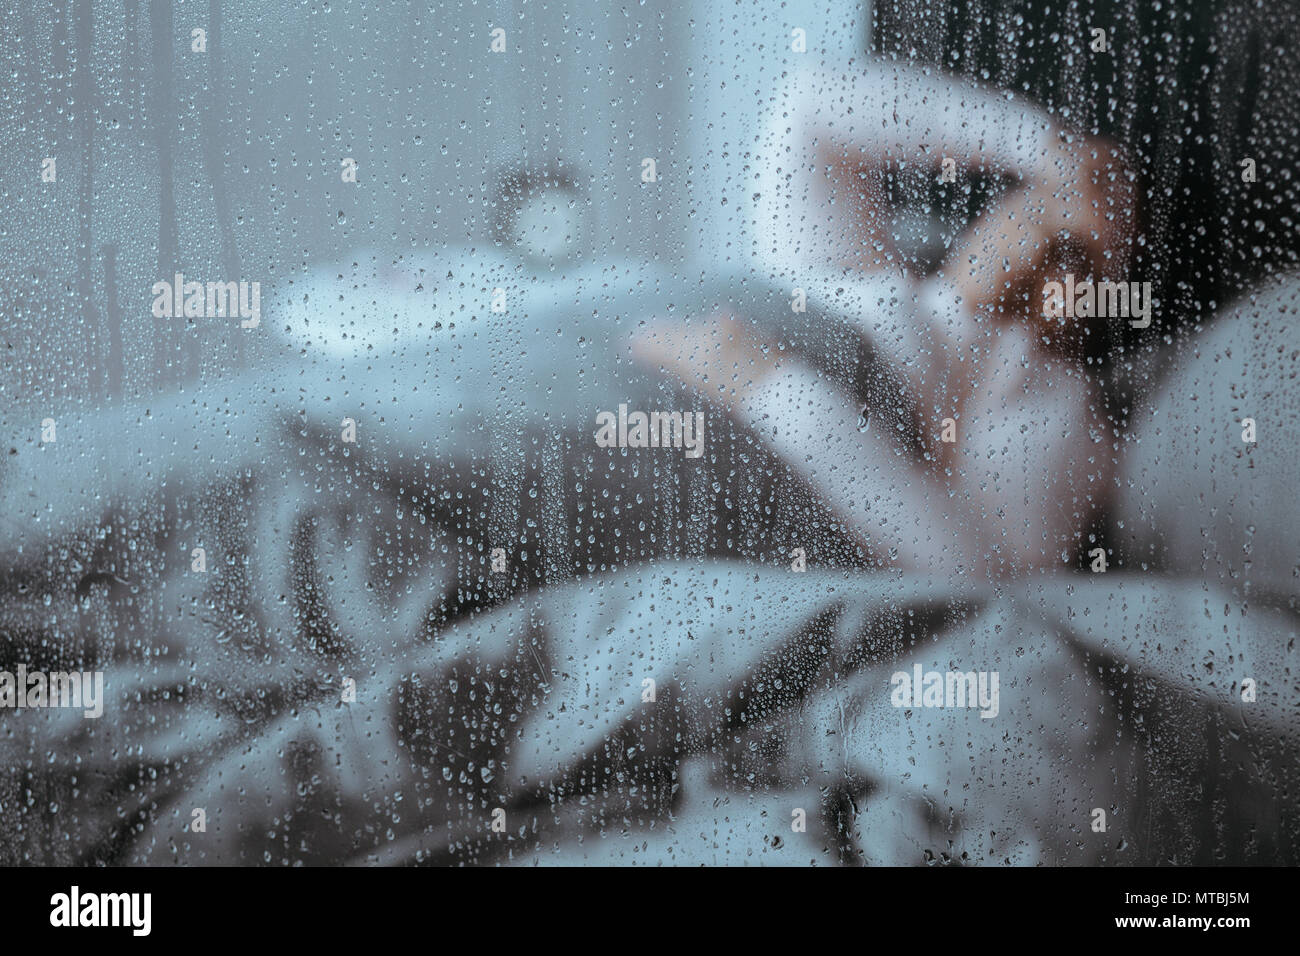 Woman suffering from sleeplessness lying in bed on rainy day - Stock Image